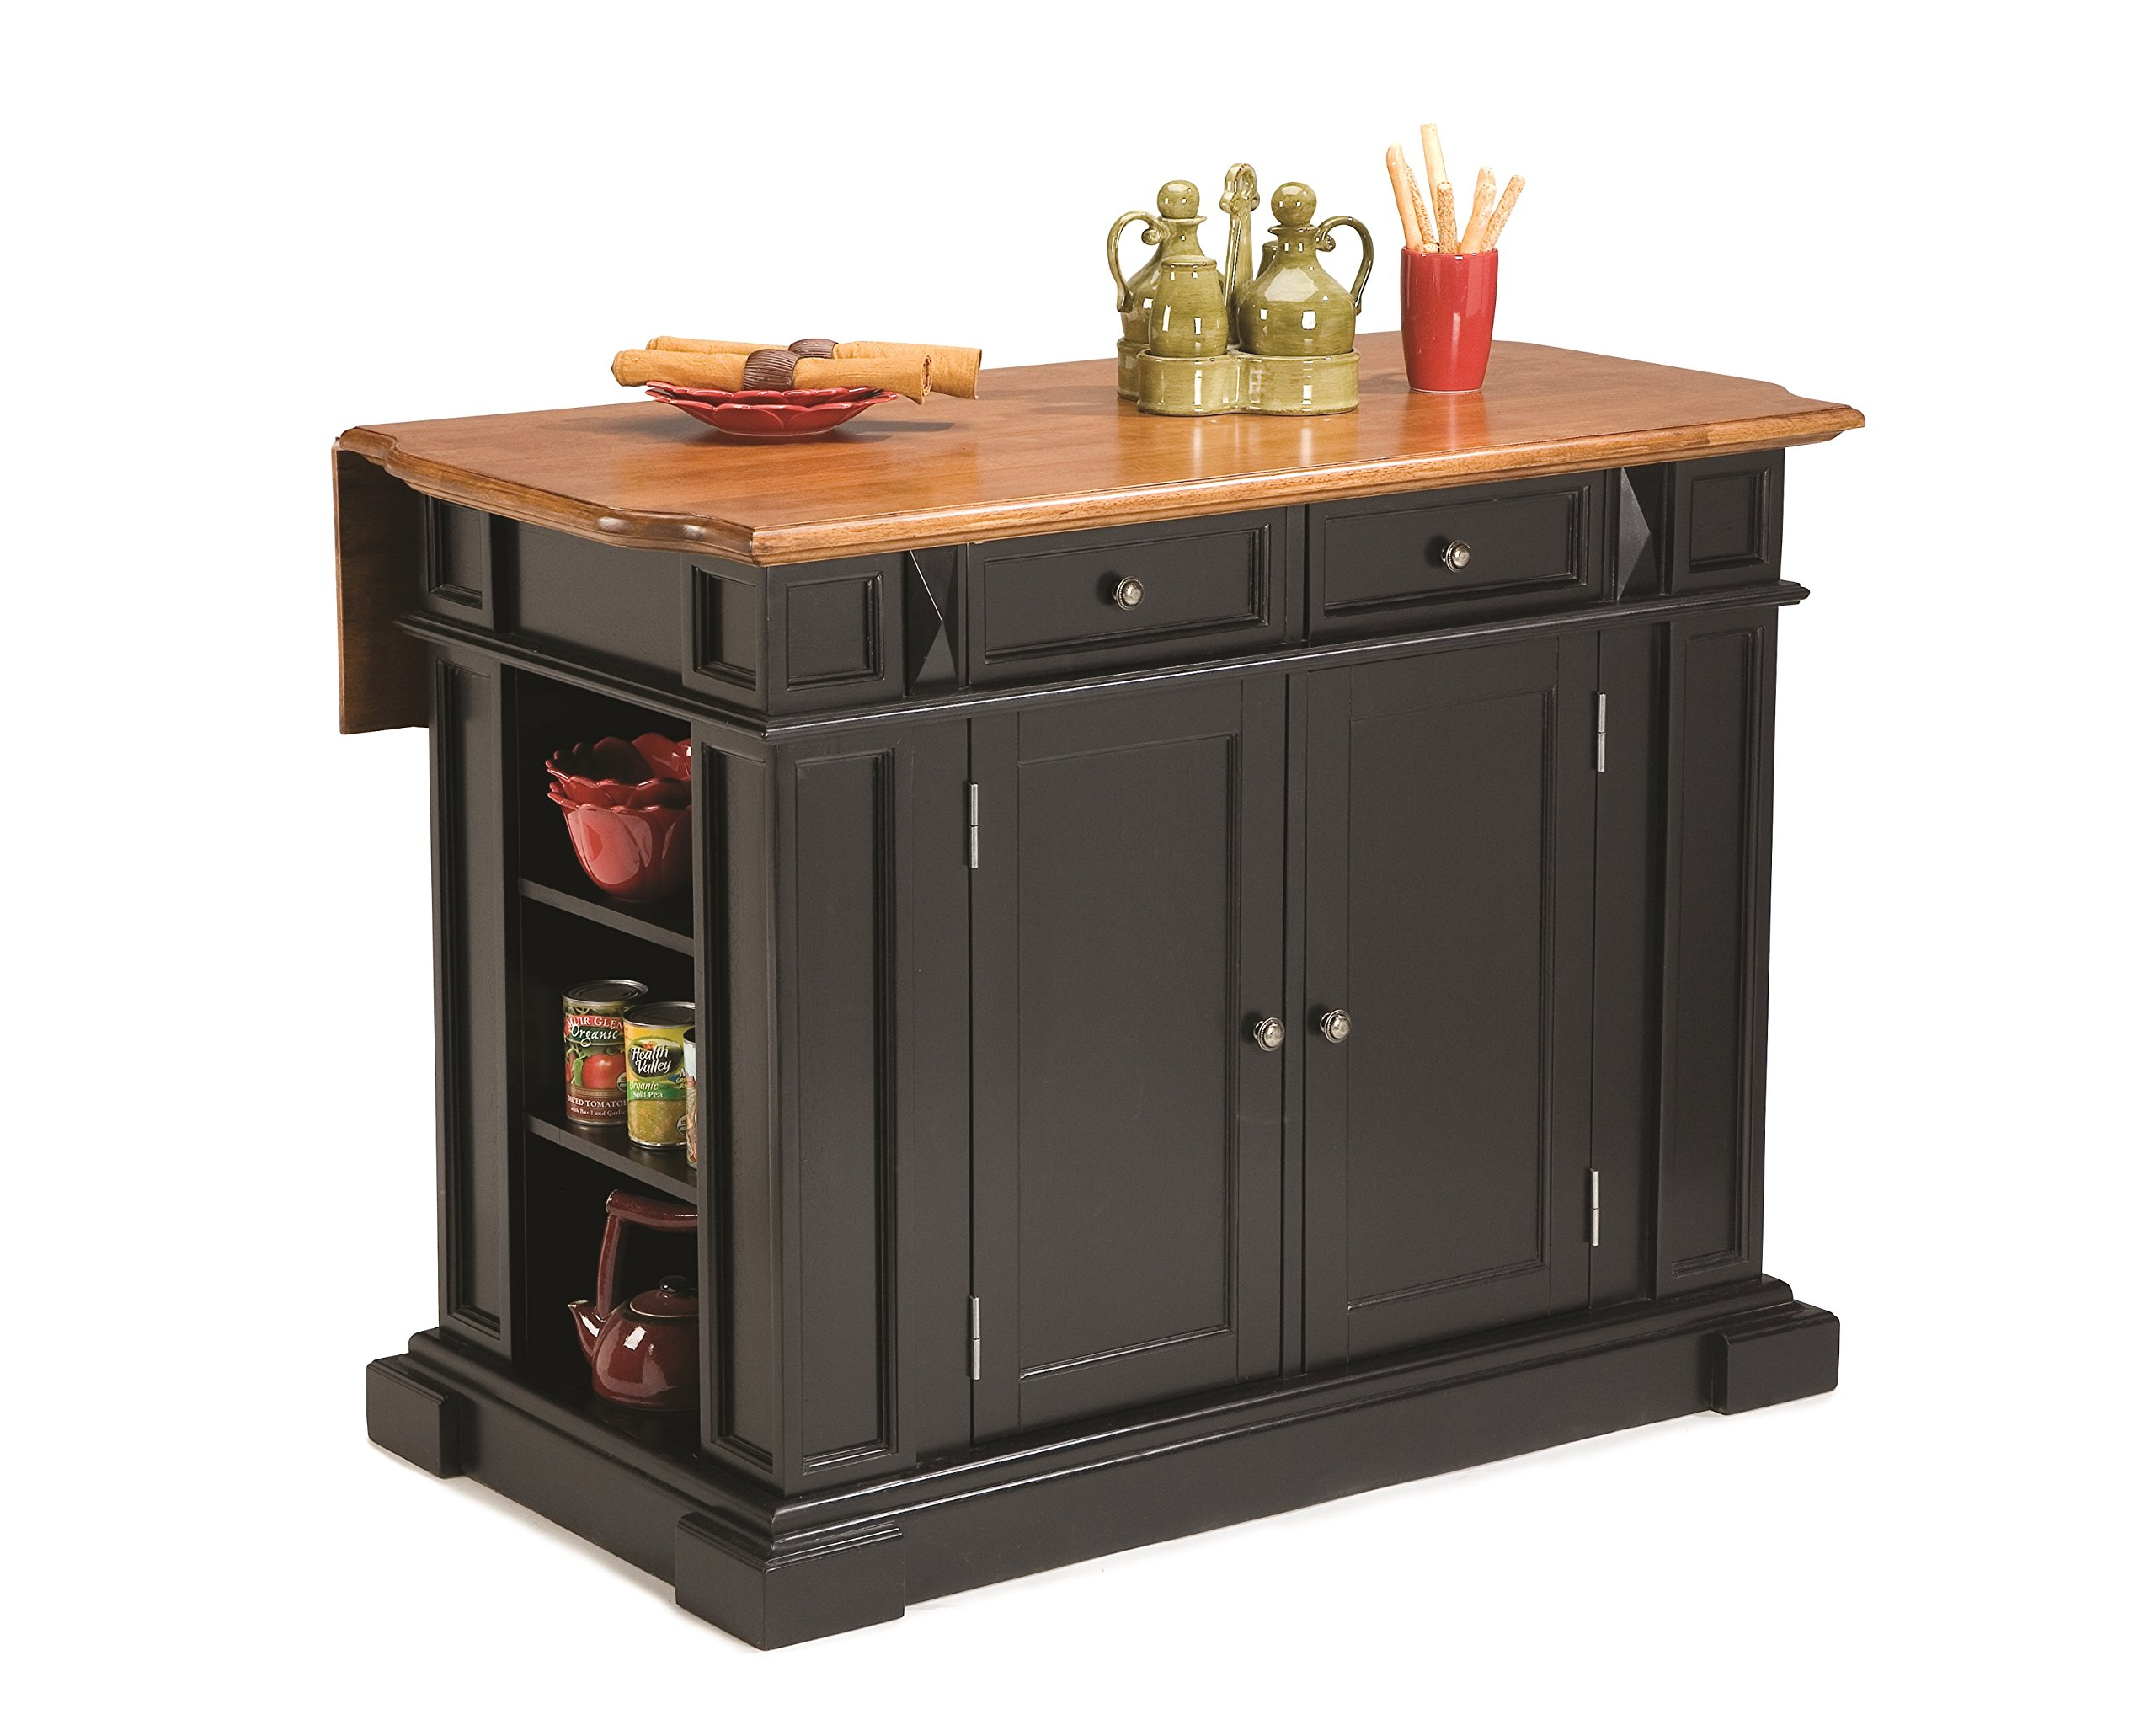 Americana Black and Distressed Oak Kitchen Island by Home Styles by Home Styles